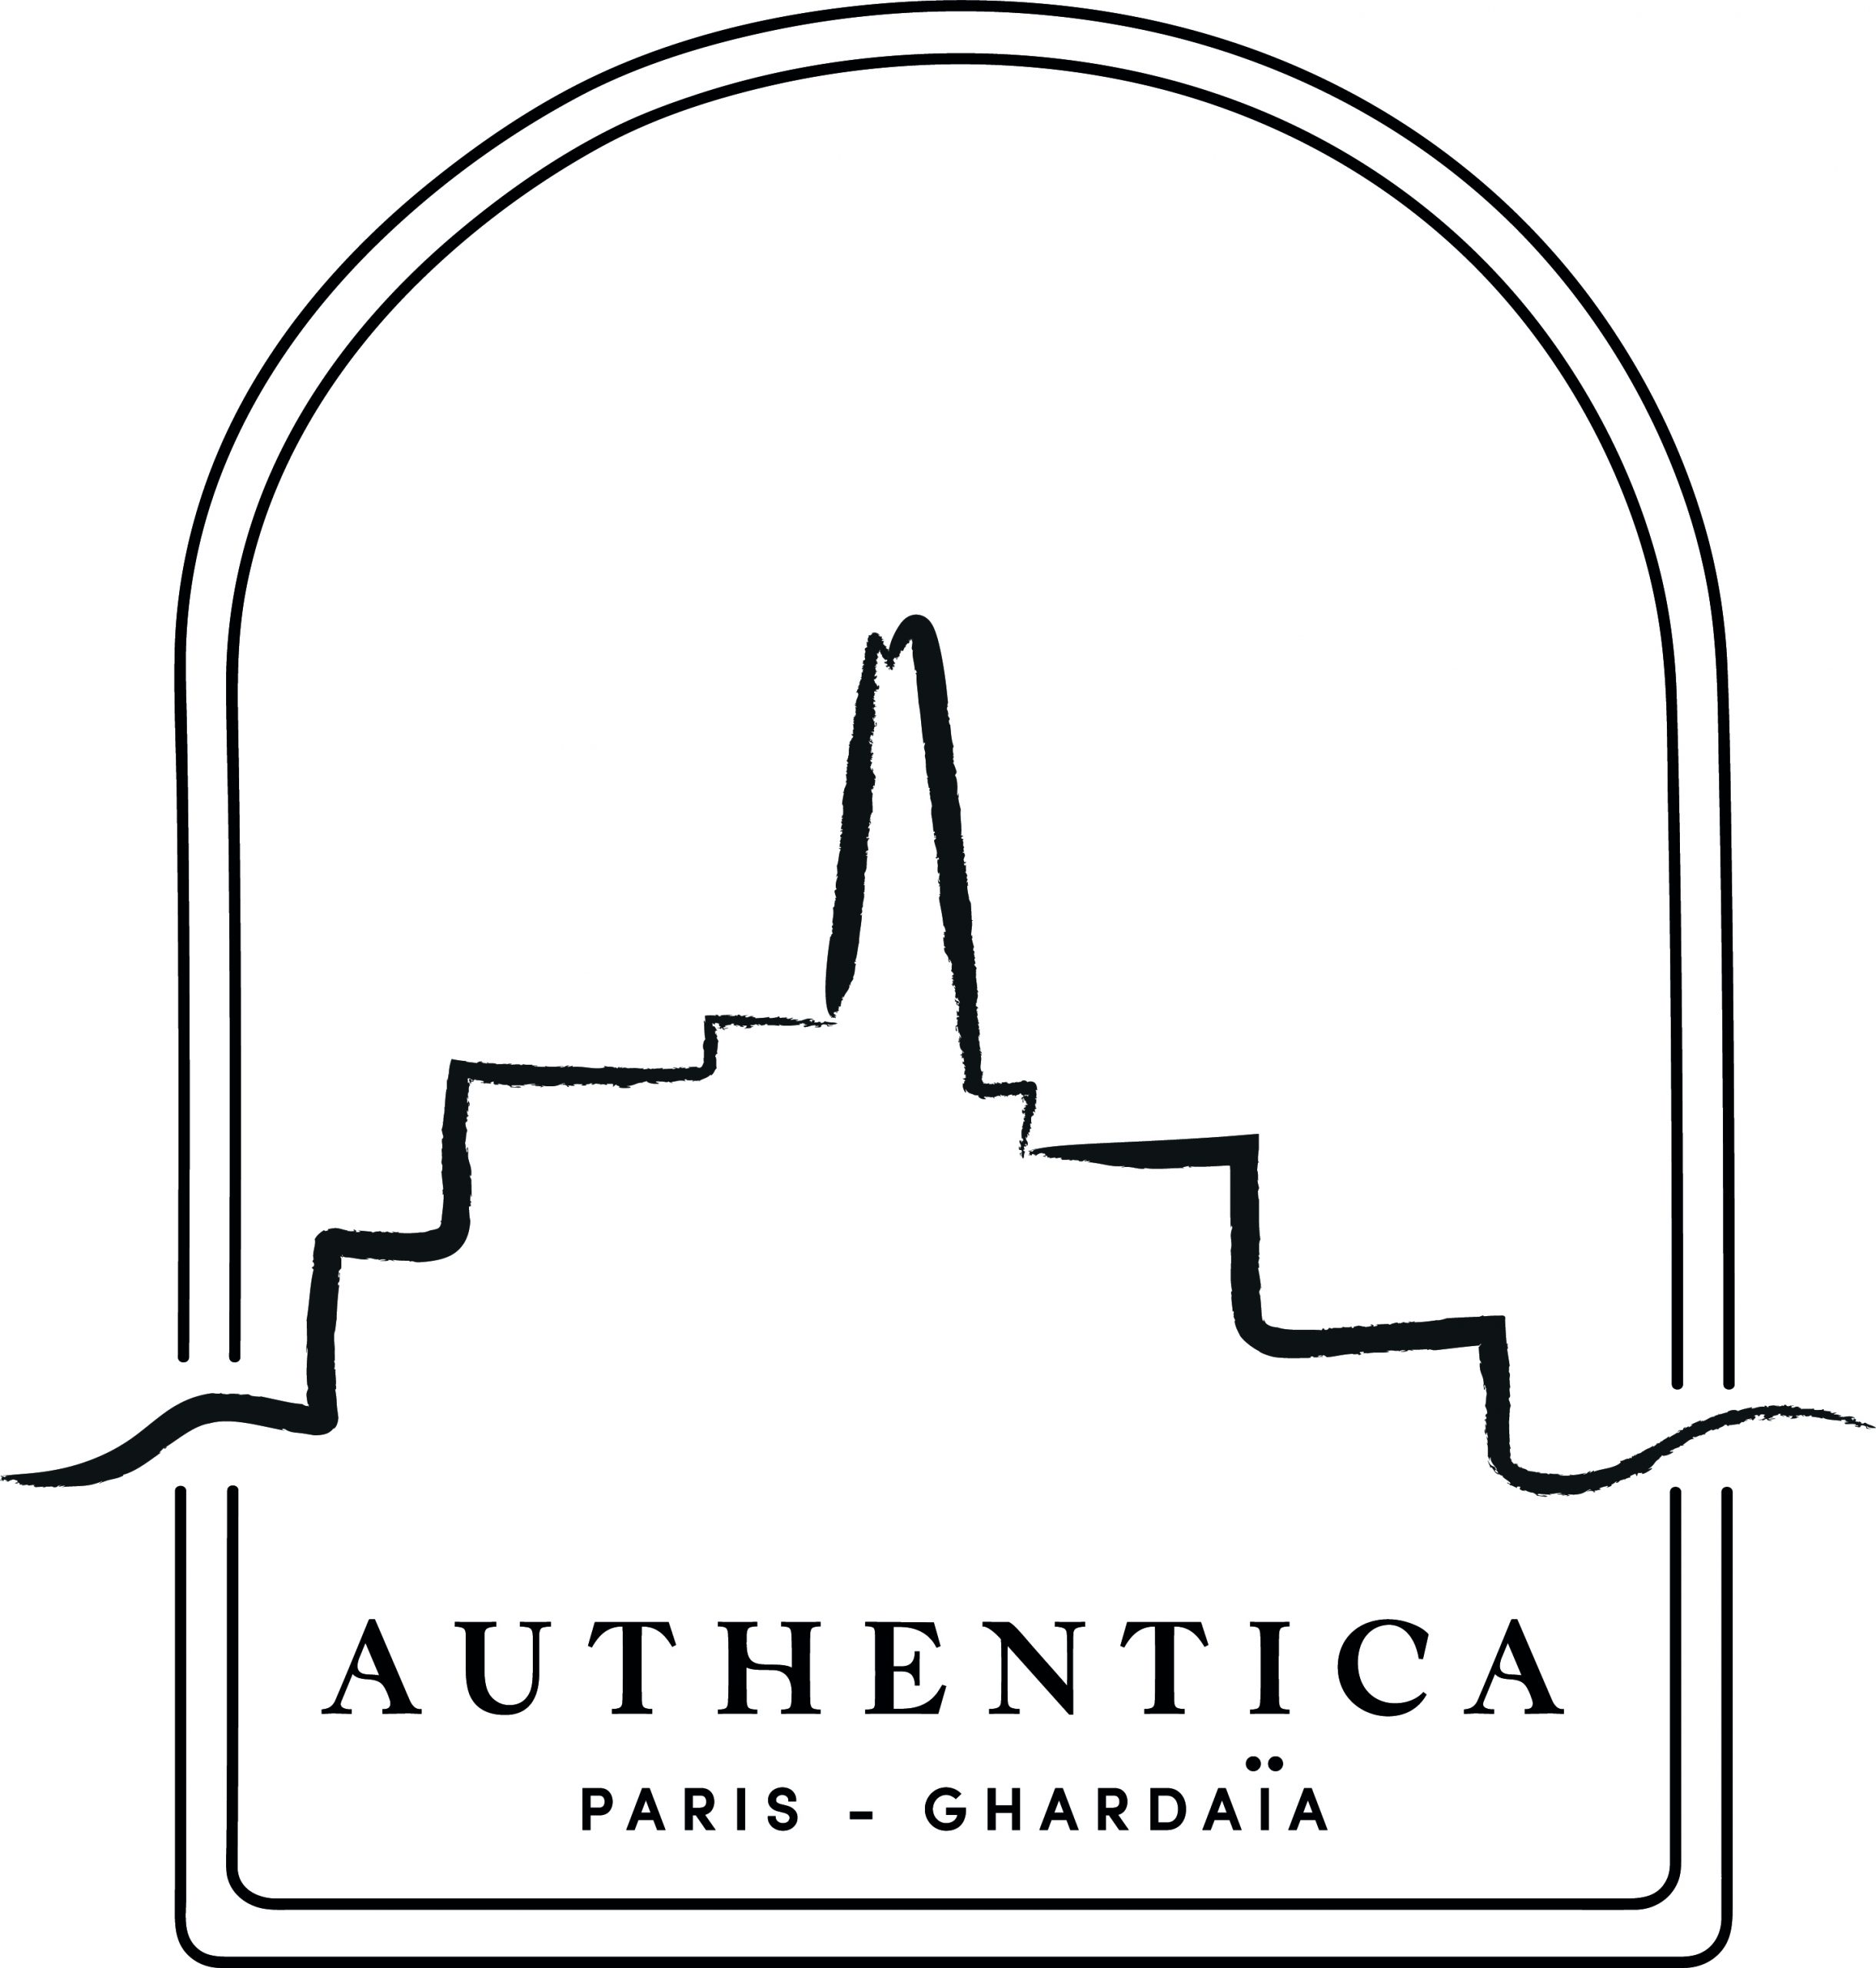 Authentica Paris